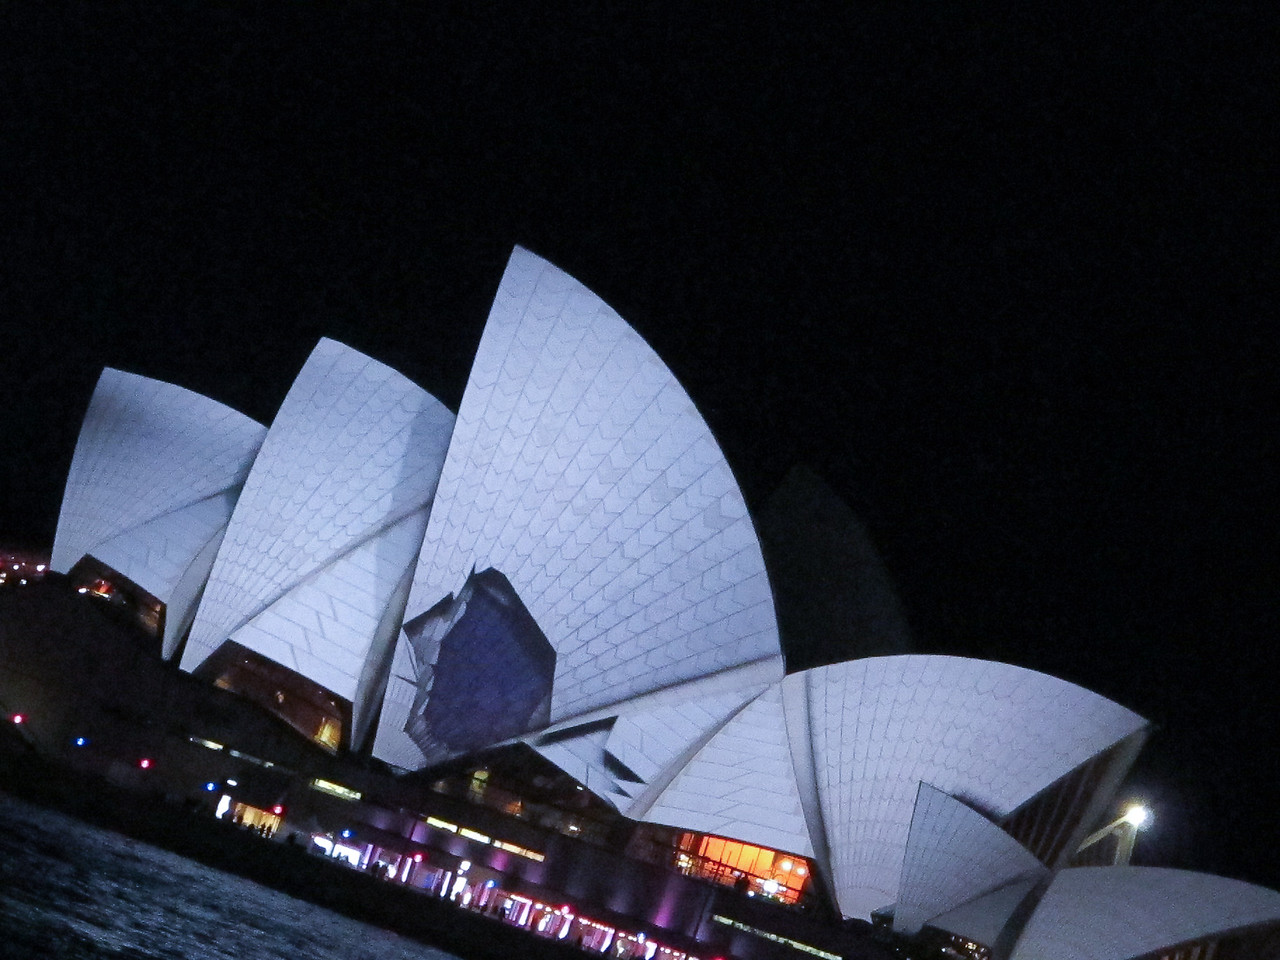 The amazing light projections on the majestic Opera House. Don't be alarmed, the world heritage structure is still in tact.